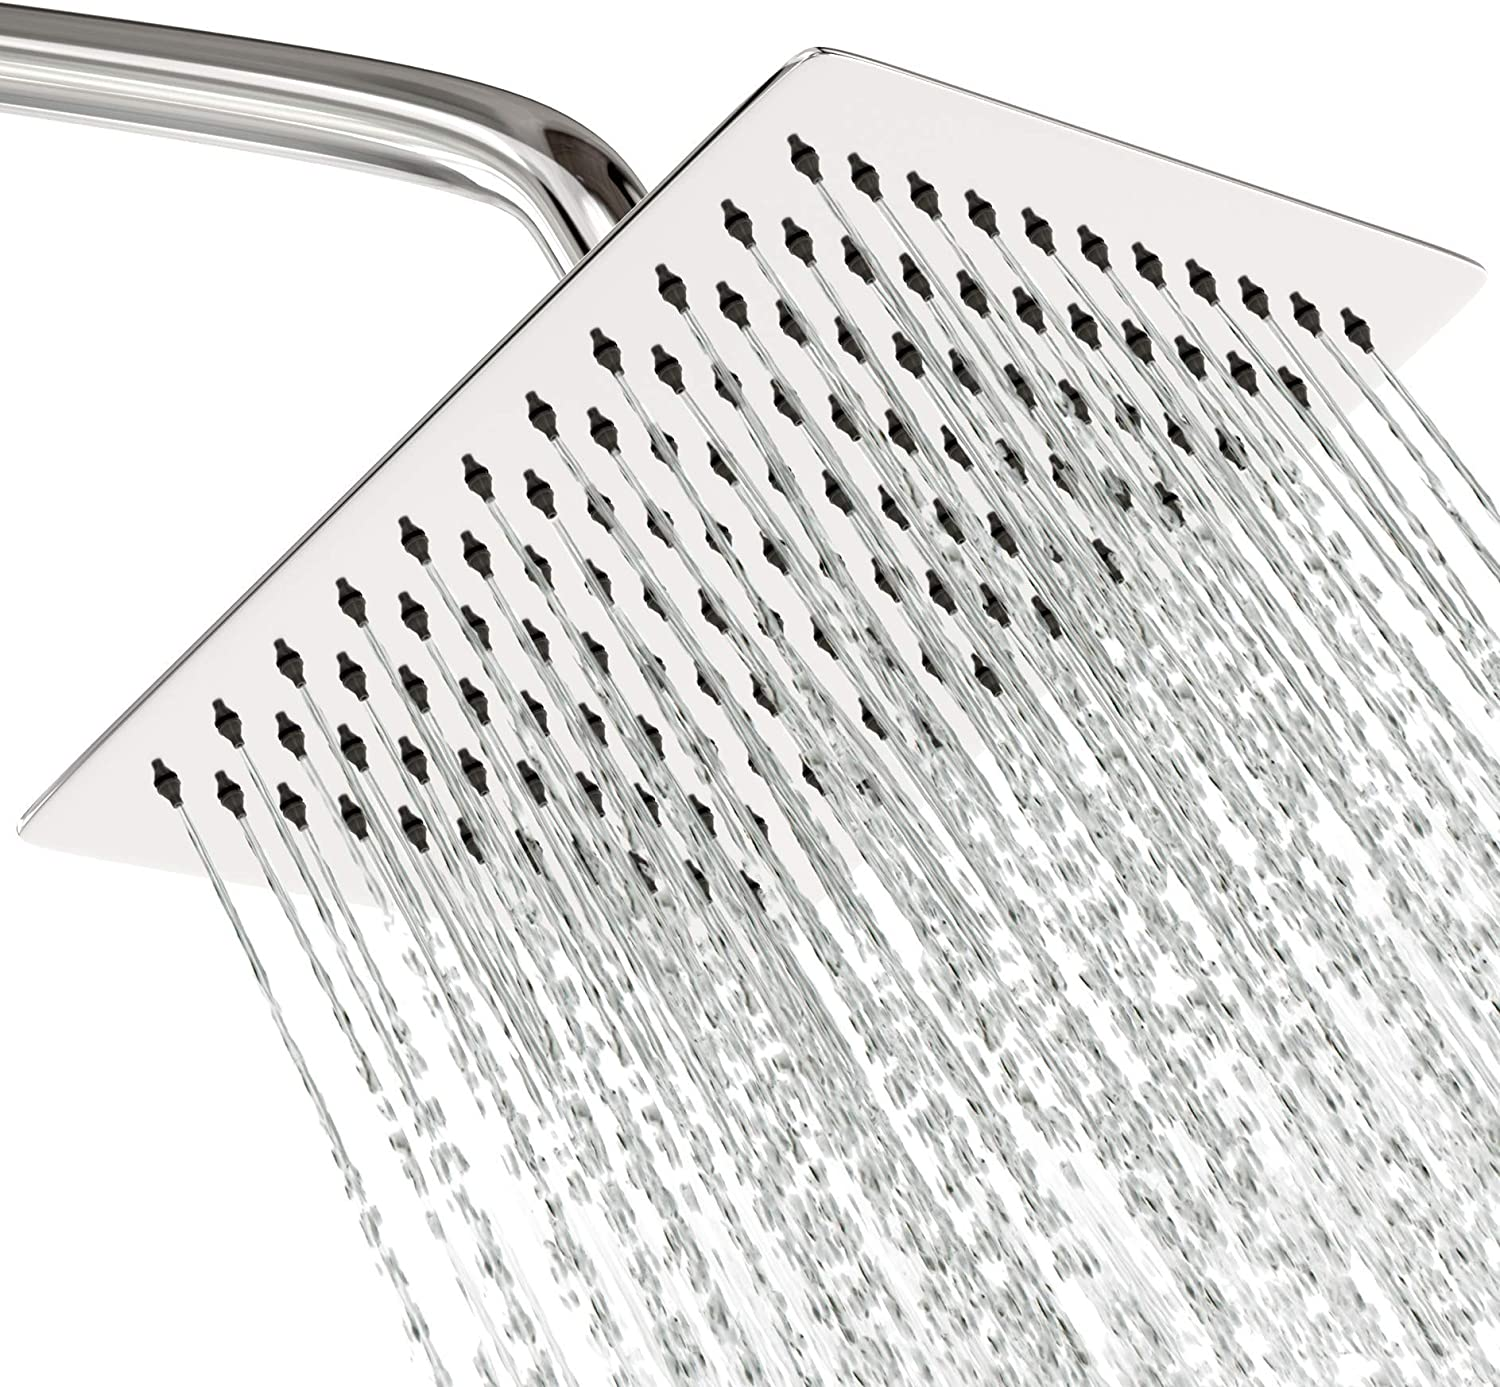 Rain Shower Head Stainless Steel NEW 2019 High Pressure Square 8 In Rainfall Bathroom Powerful Spray Shower Heads Best High Flow Fixed Chrome SPA Showerhead with Adjustable Metal Swivel Ball